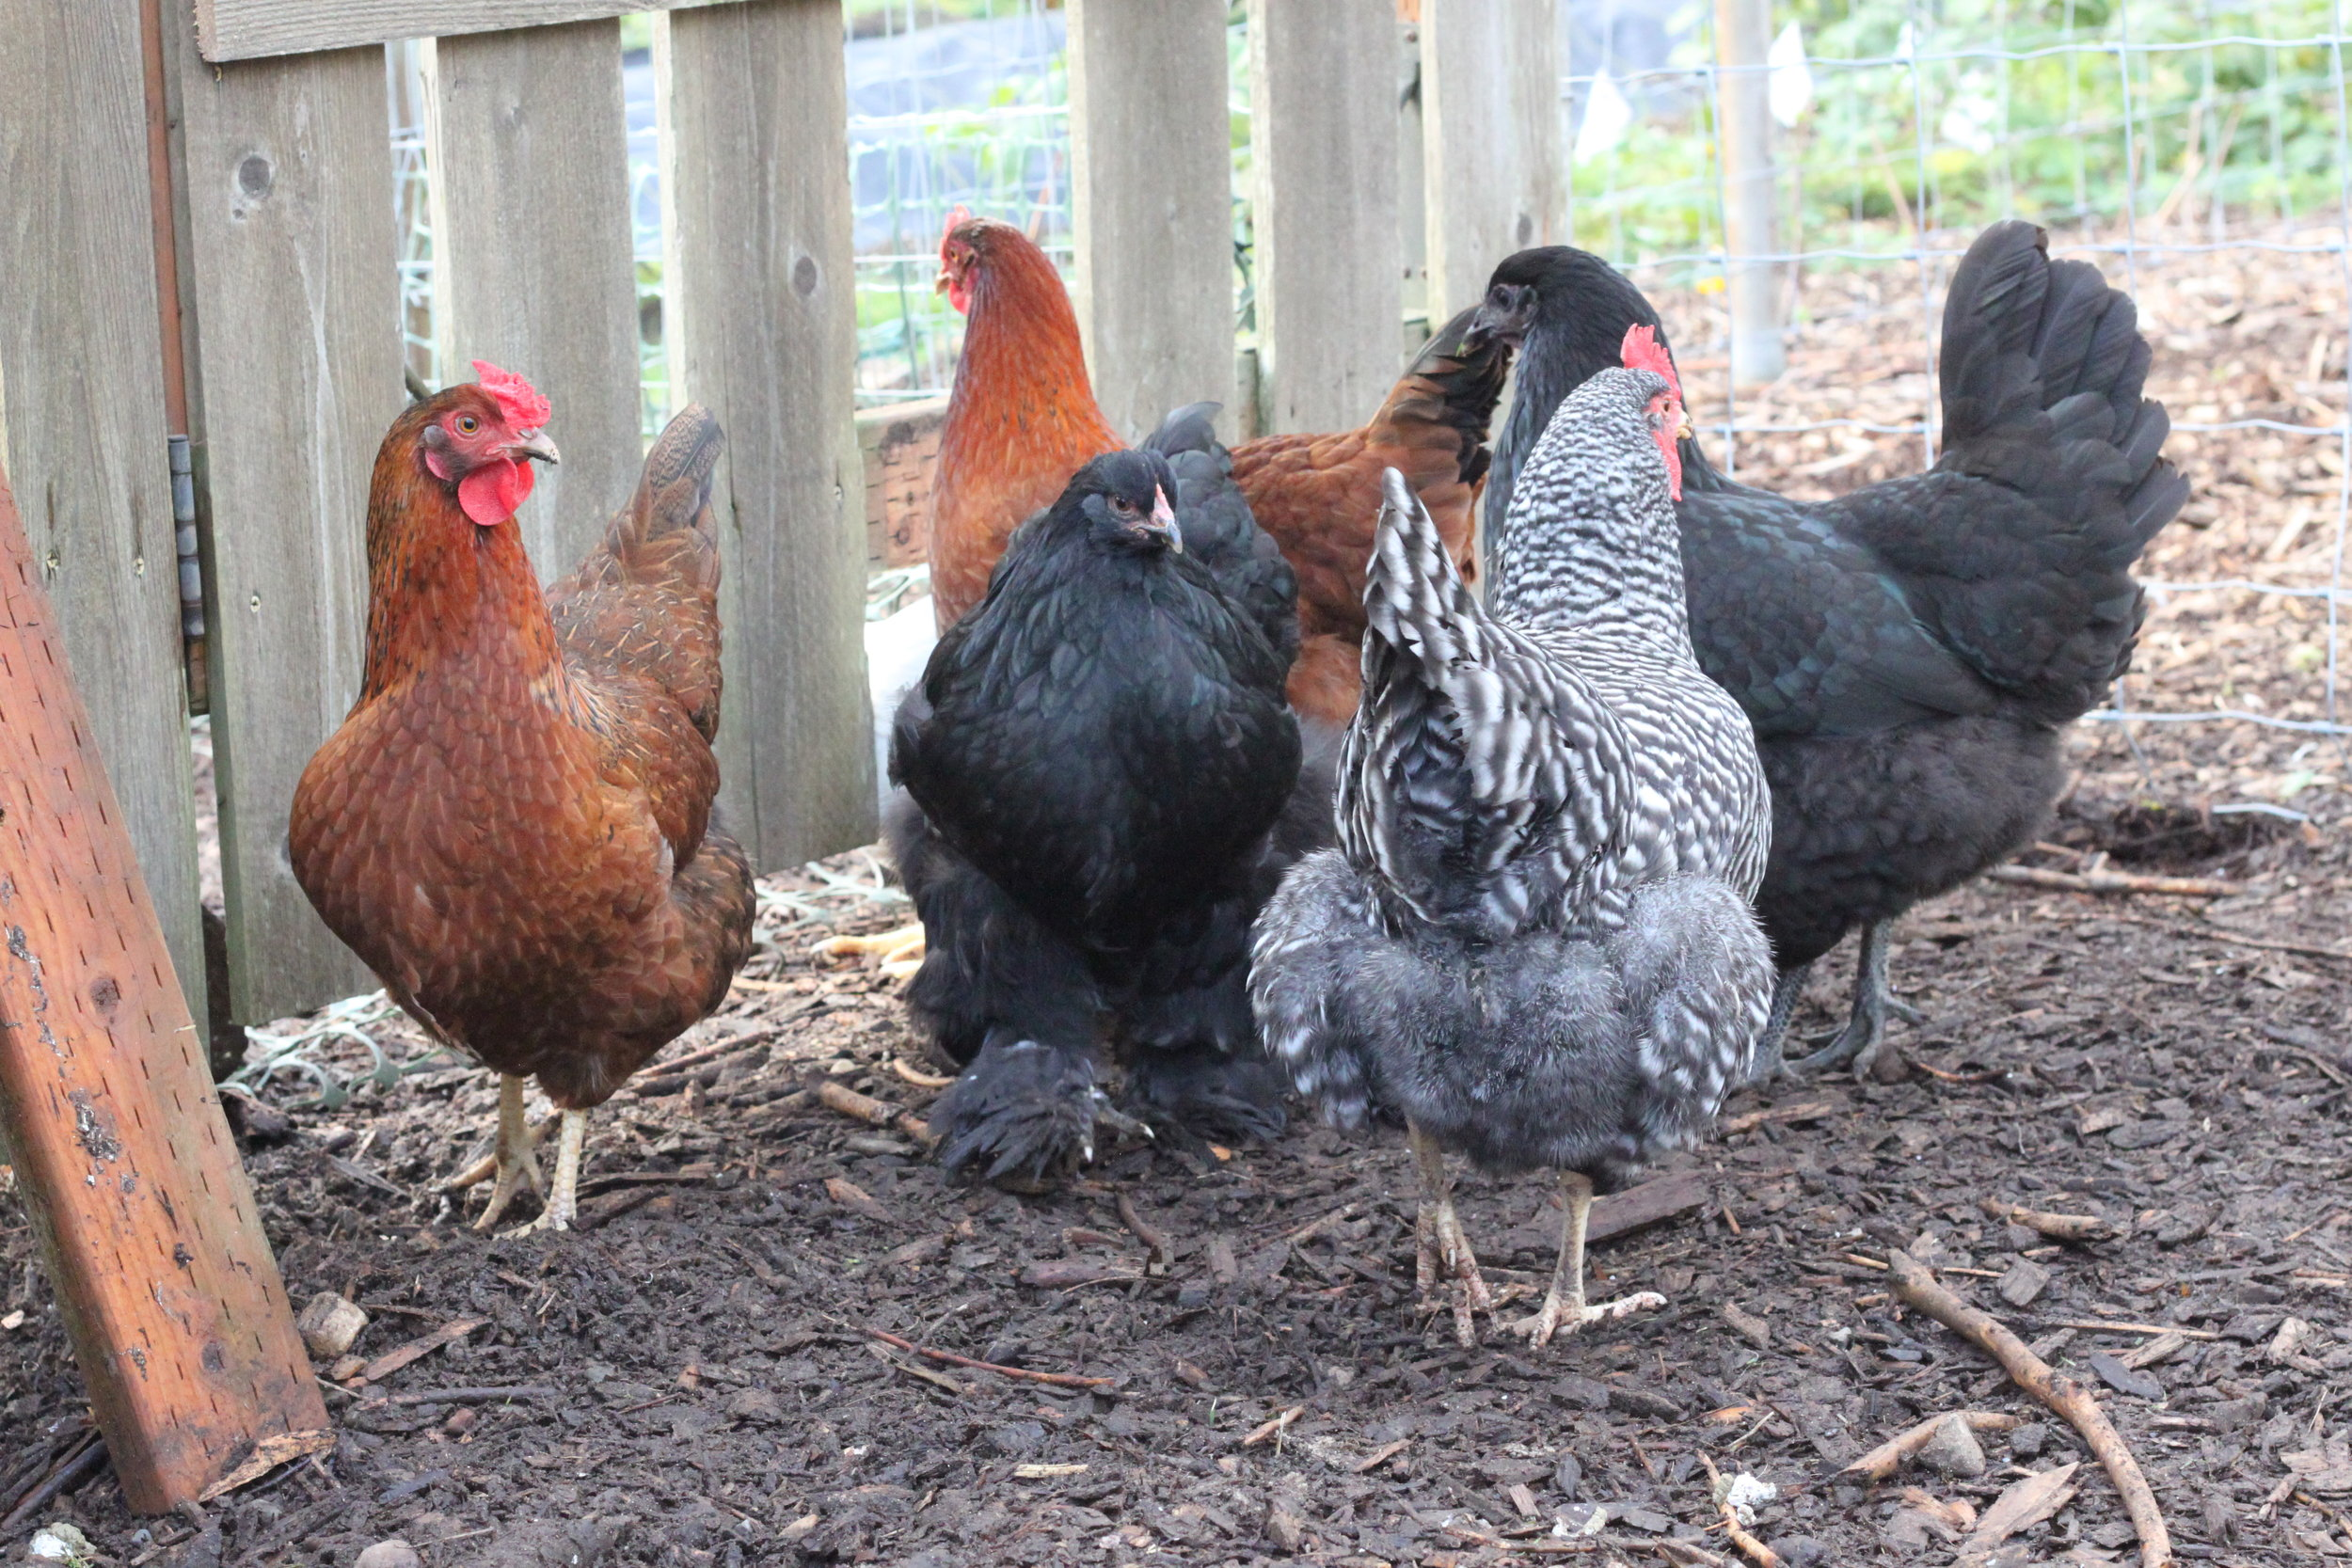 Australorp, Bard Rock, and Rhode Island Reds